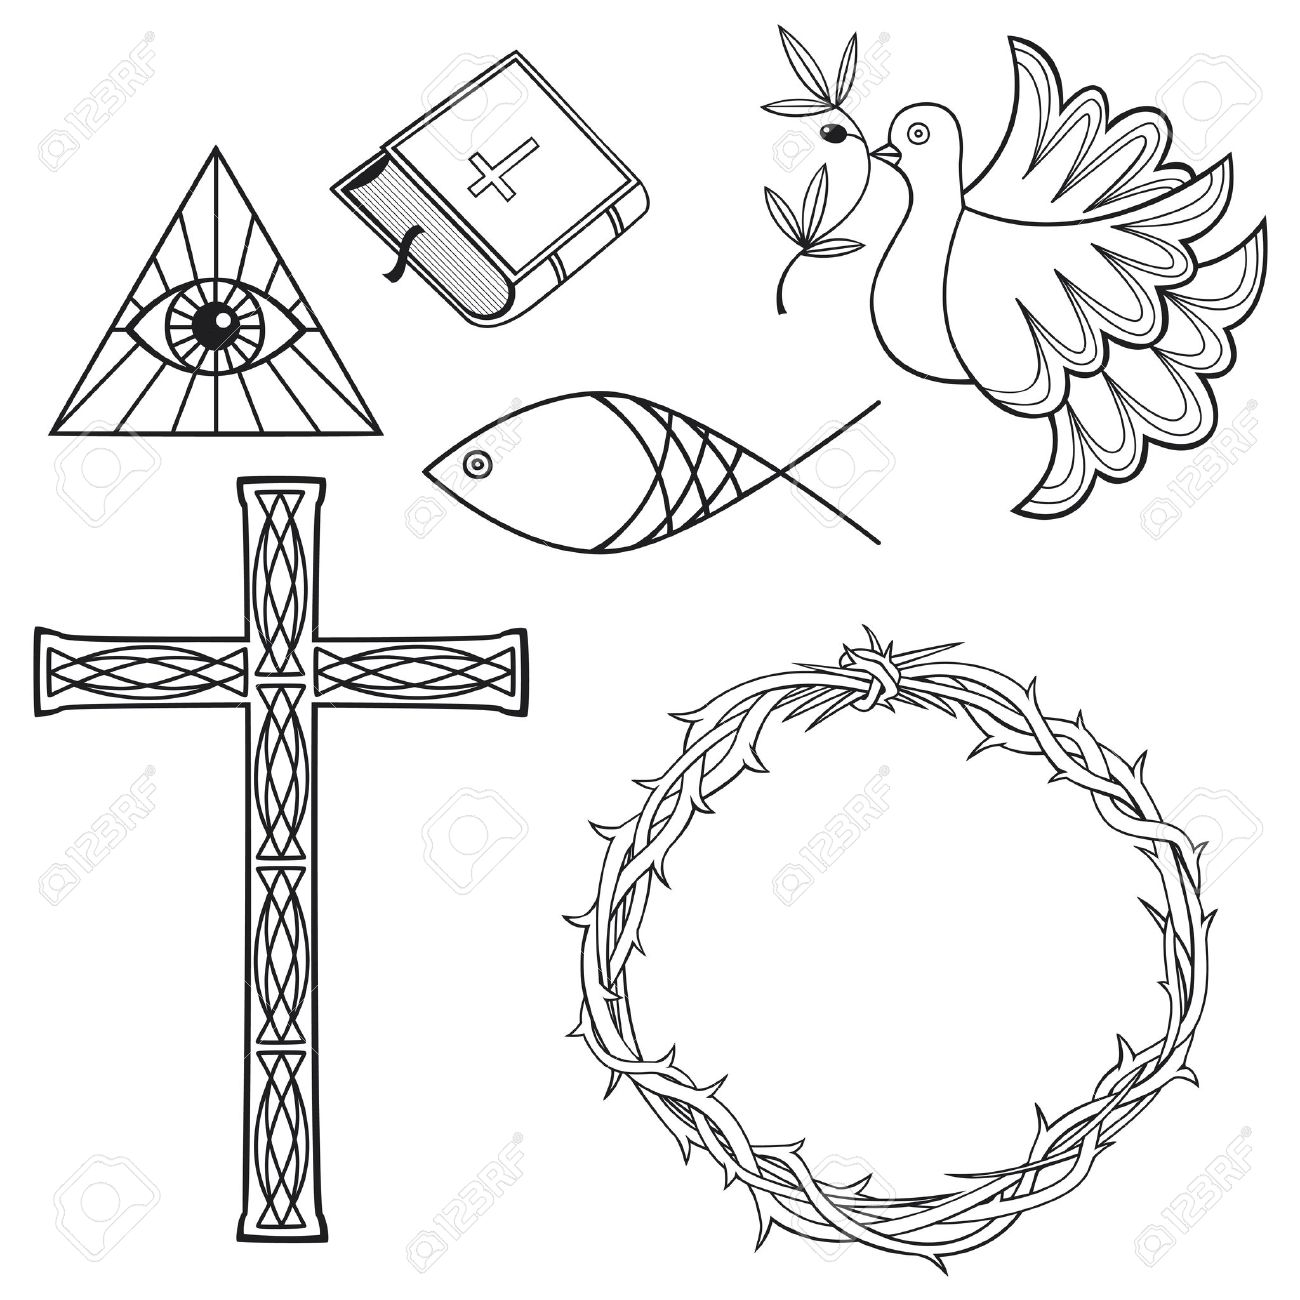 crown of thorns images u0026 stock pictures royalty free crown of